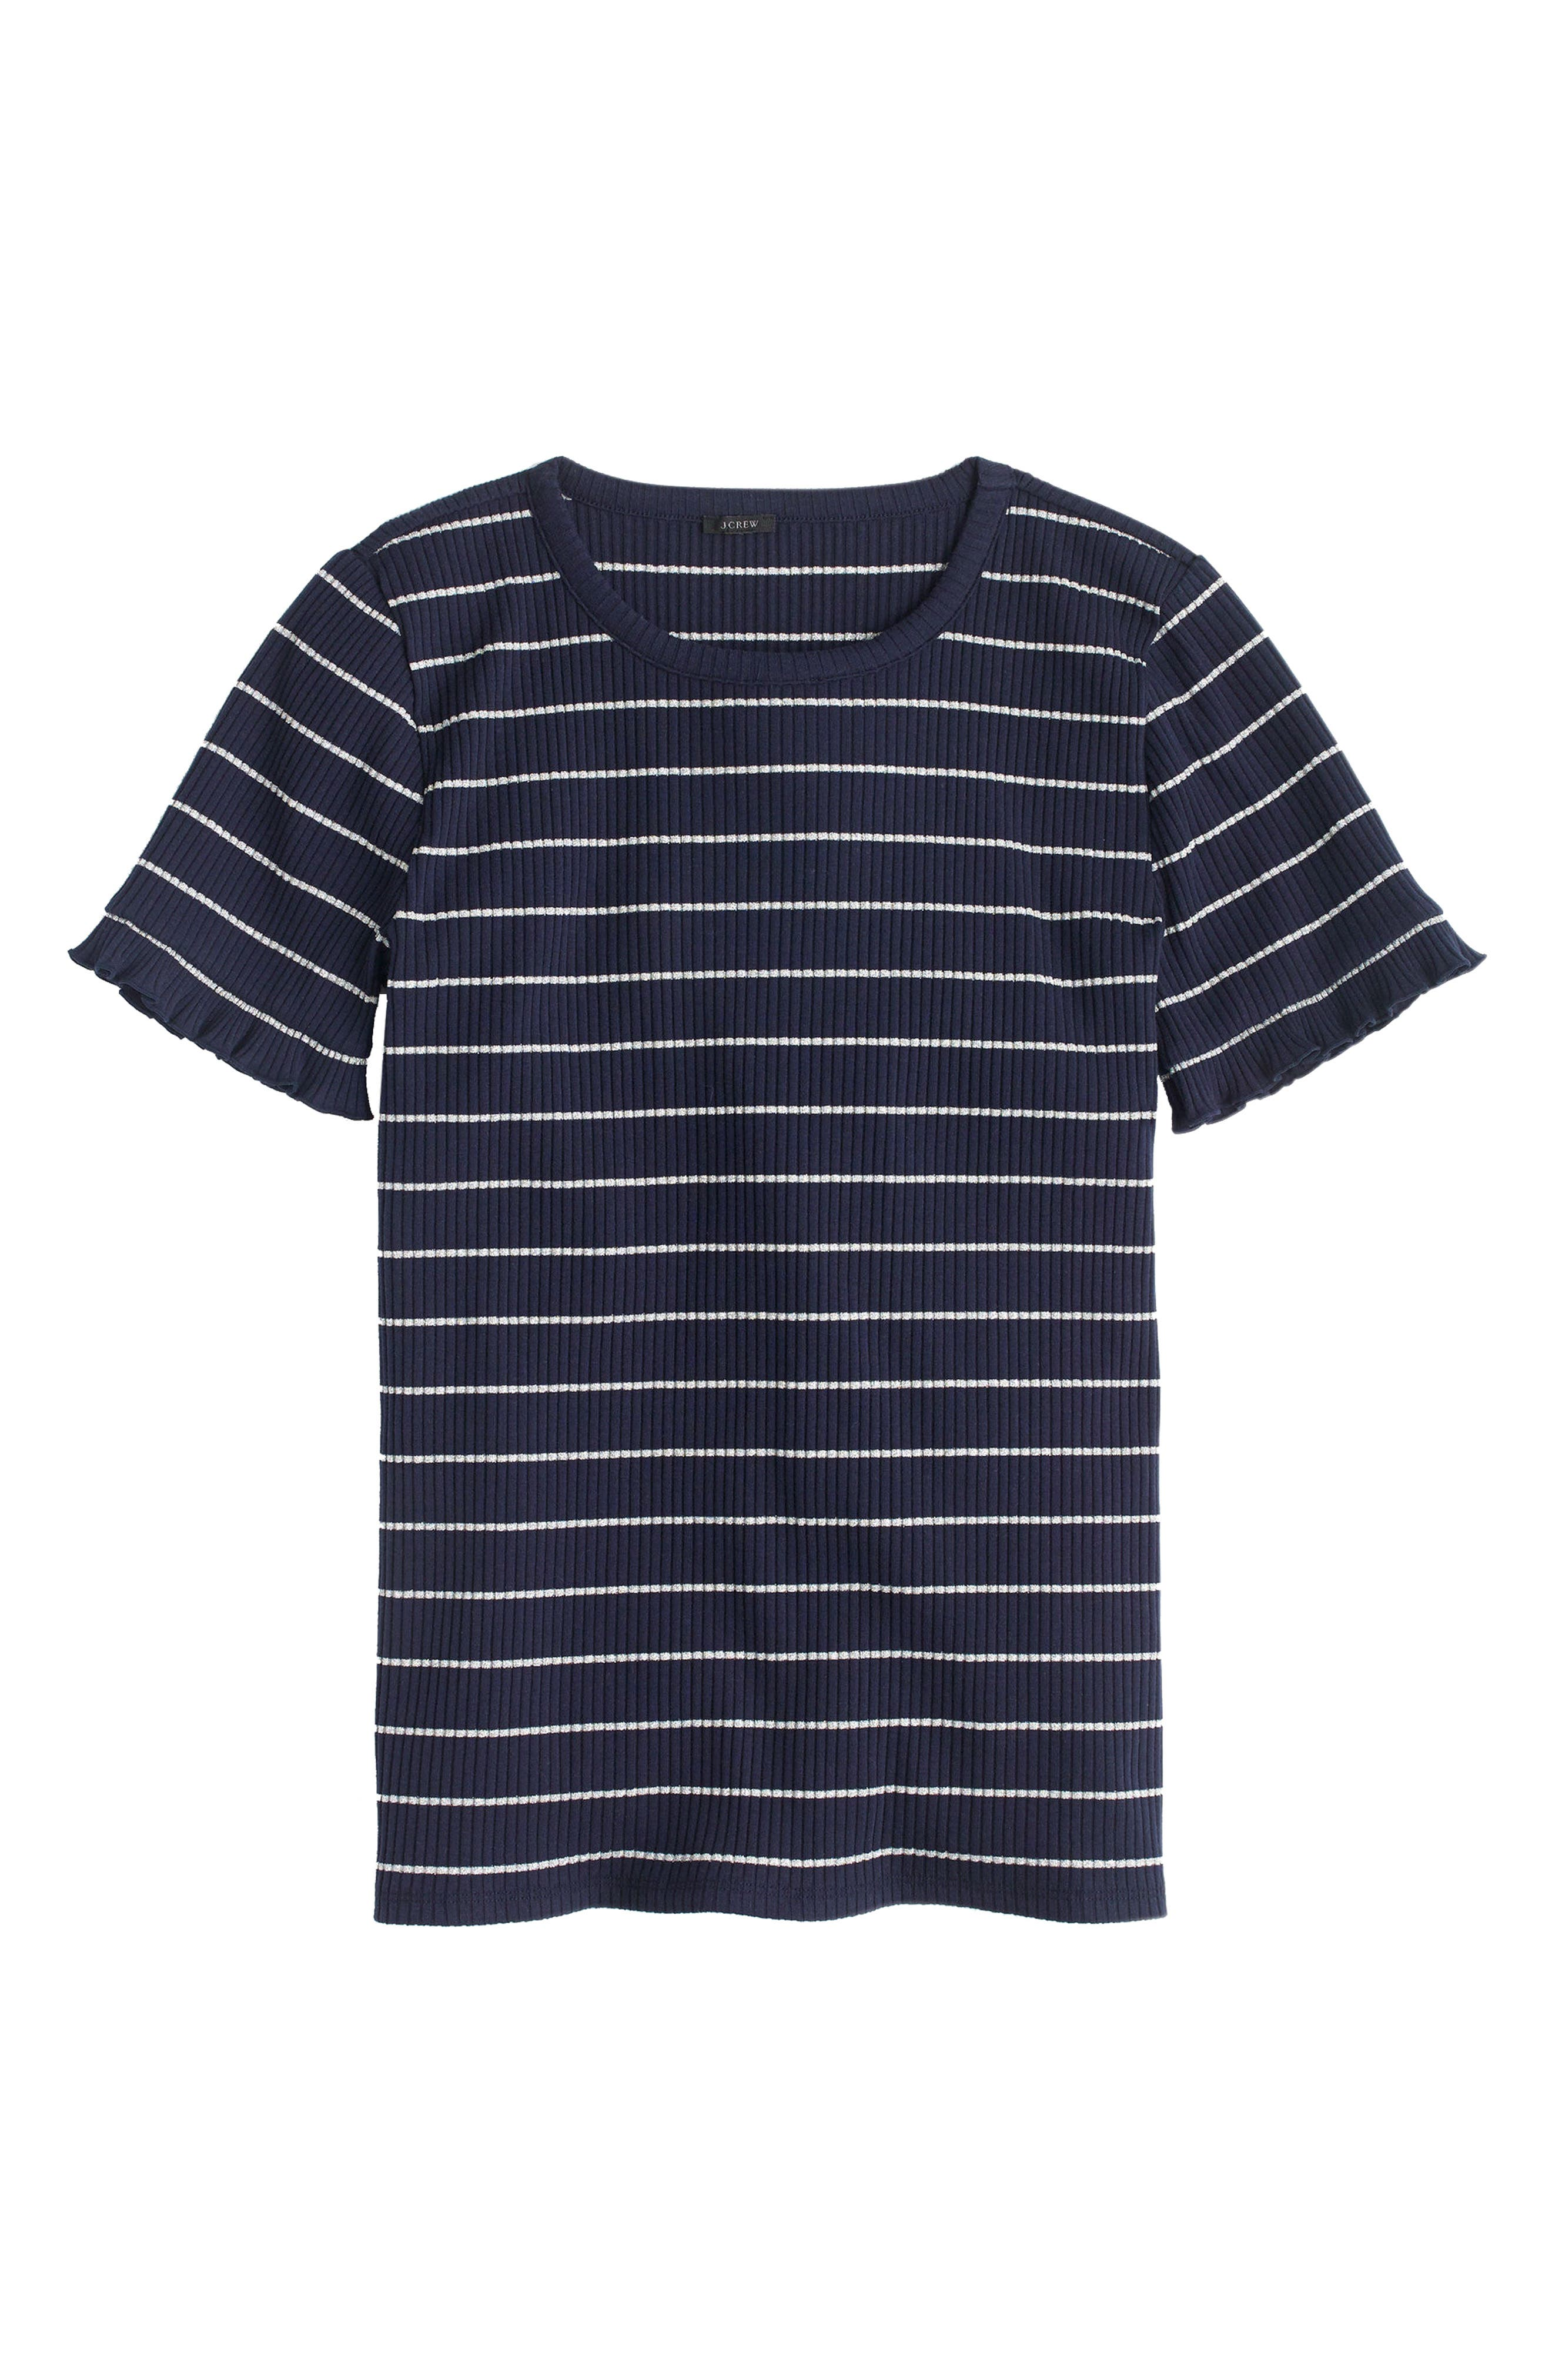 J.Crew Ribbed Stripe Tee with Ruffle Sleeves,                             Main thumbnail 1, color,                             Navy/ Silver